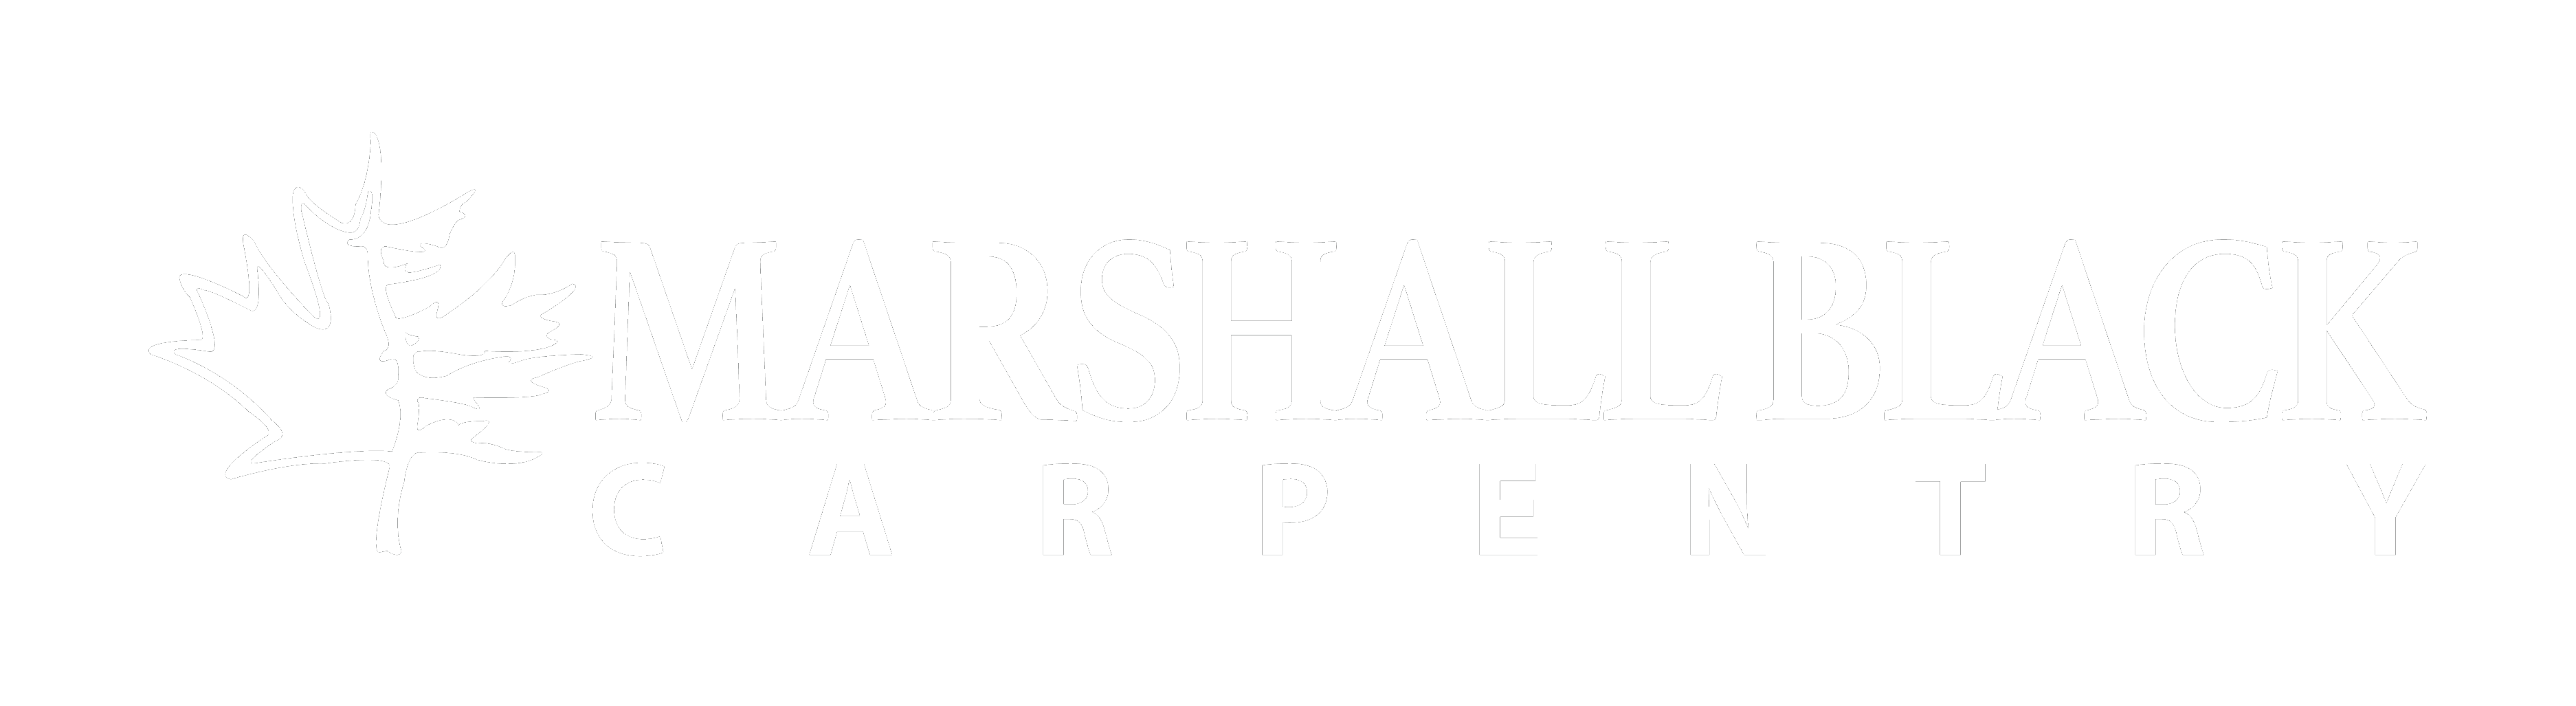 Marshall Black Carpentry